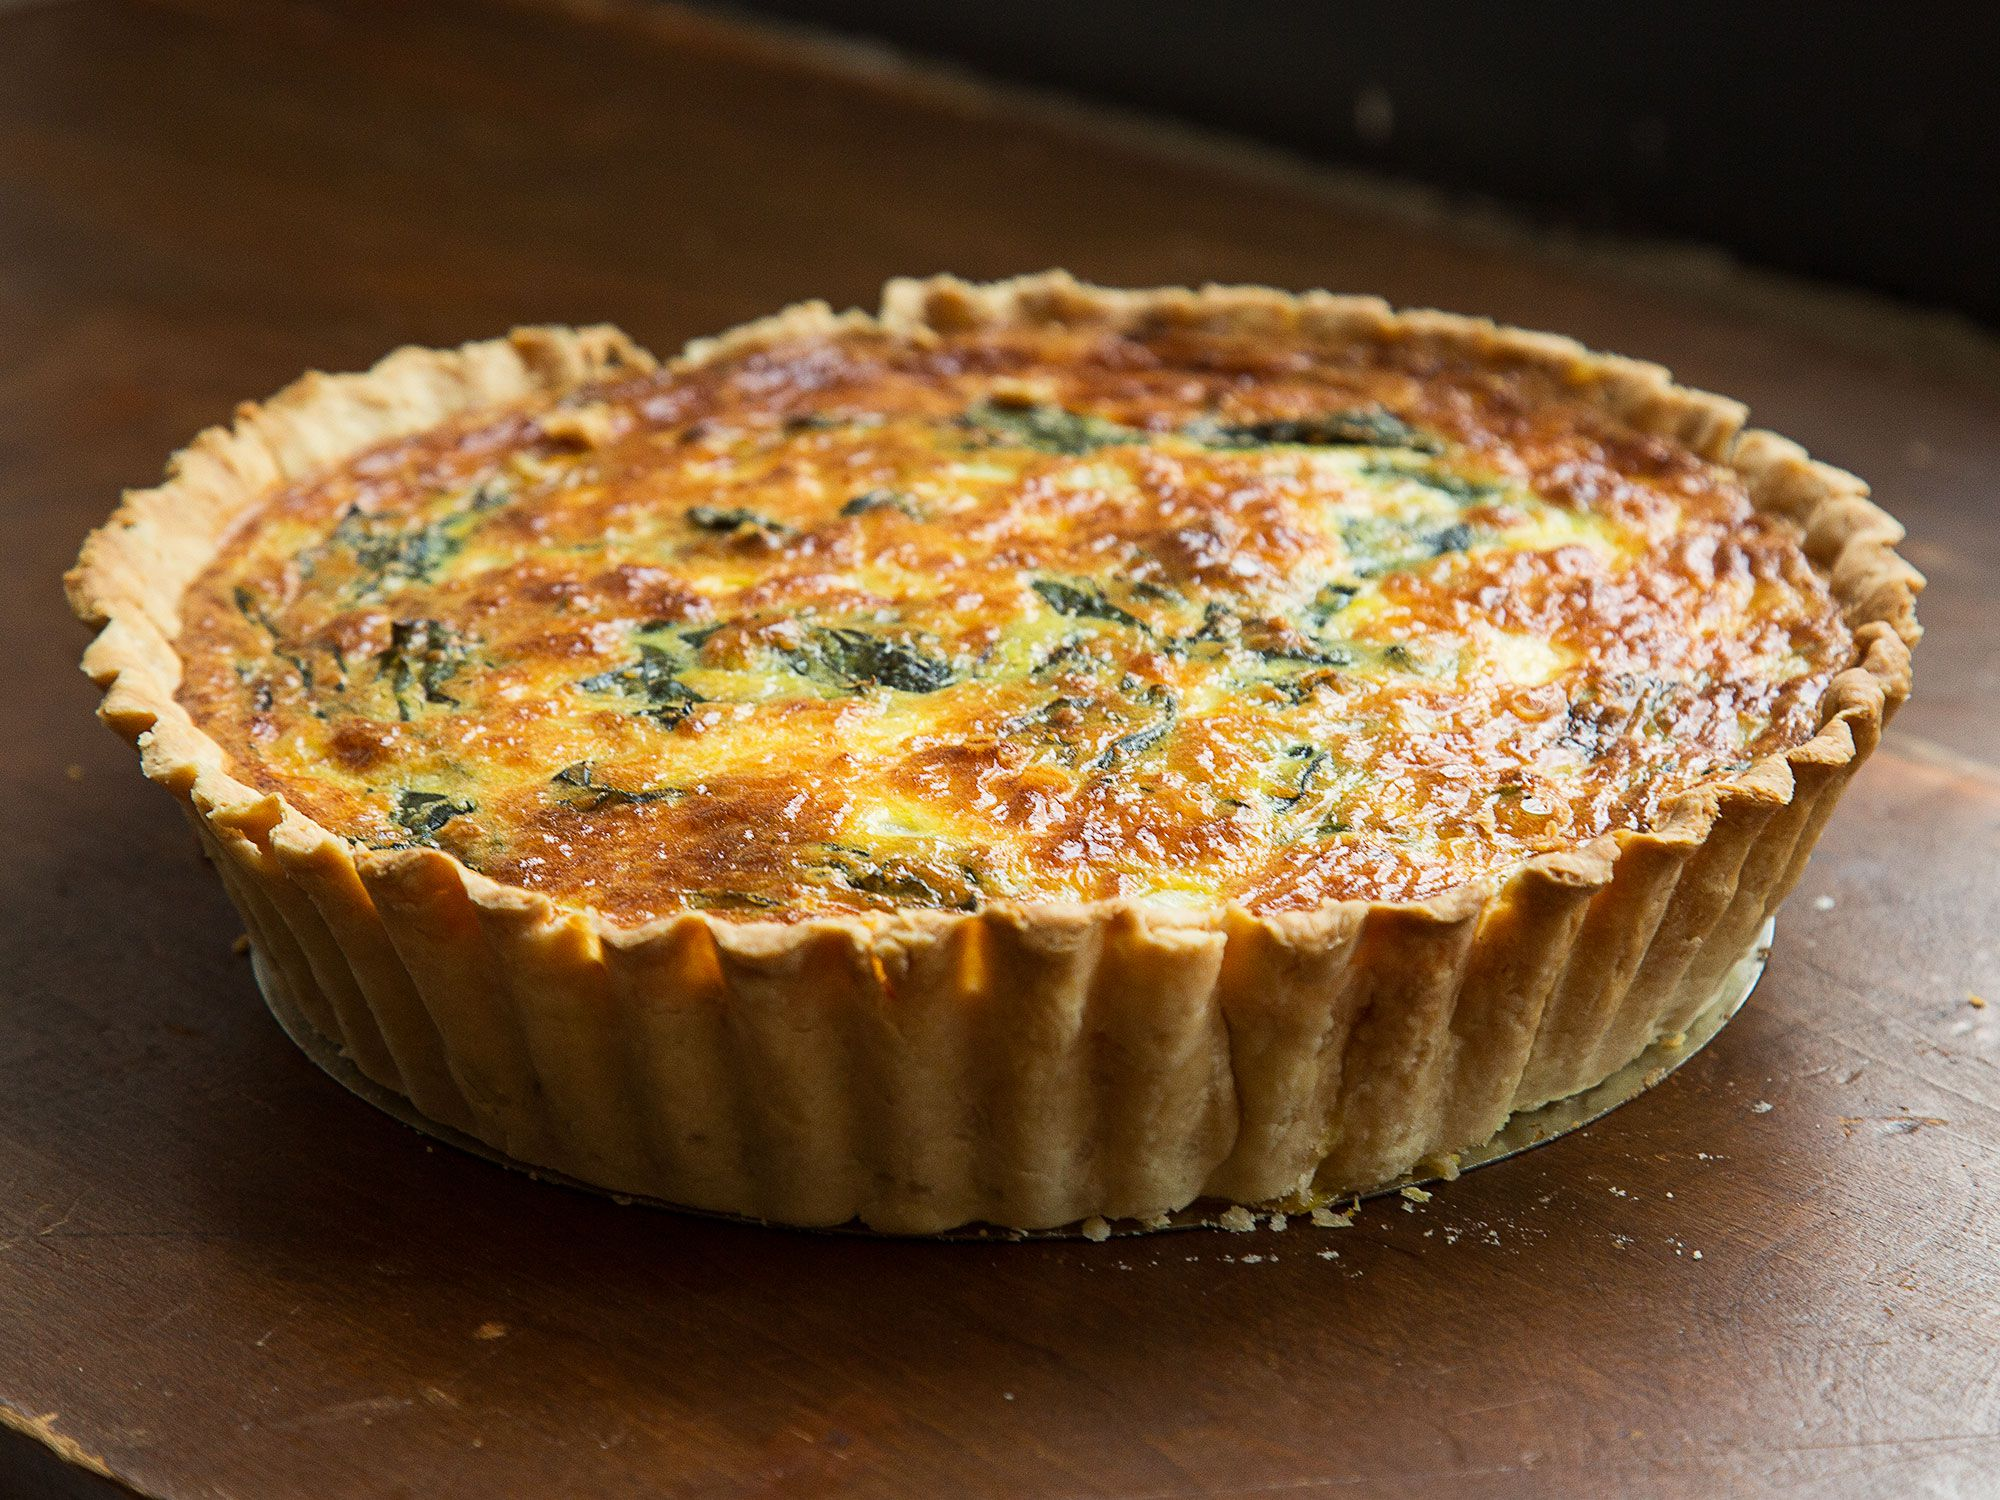 """You can use any leftover cows' milk cheese to make this quiche. Get the recipe for <a href=""""https://www.saveur.com/article/Recipes/After-Farmers-Market-Quiche/"""">After Farmers' Market Quiche</a>"""